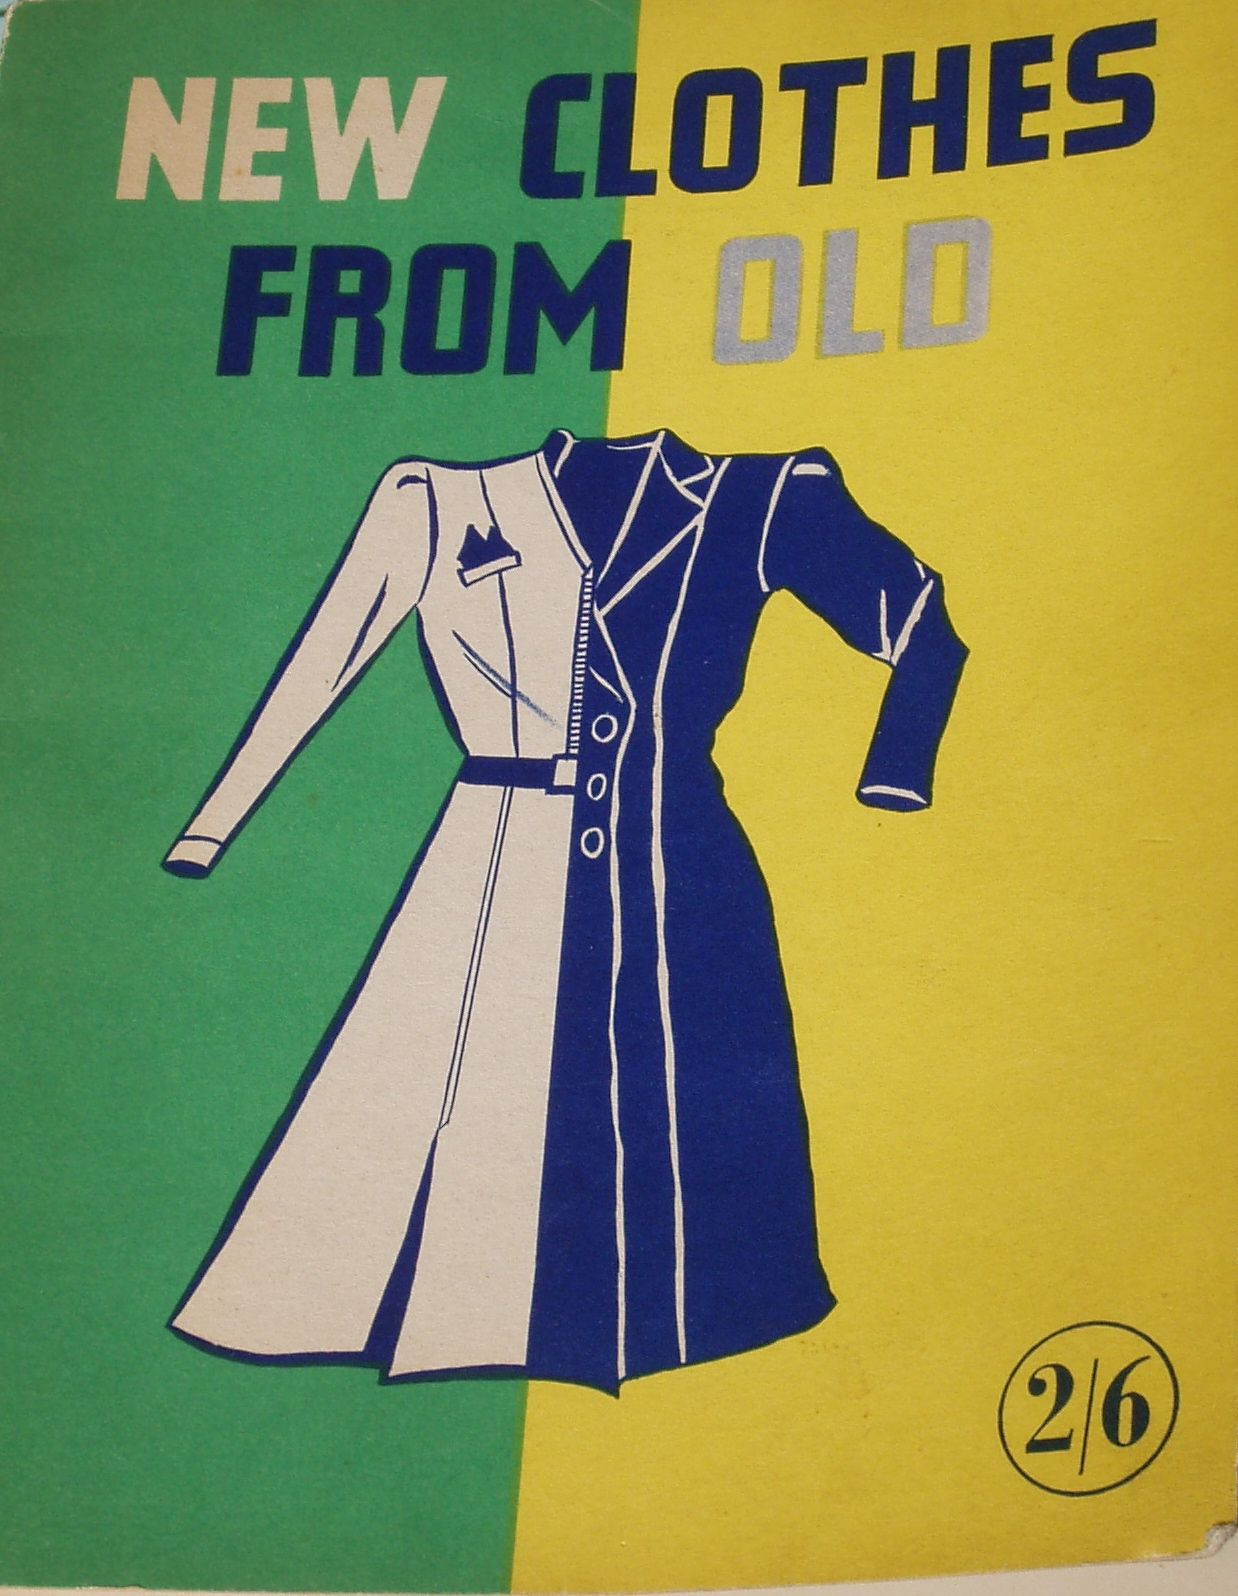 New clothes from old, make do and mend, remaking clothes